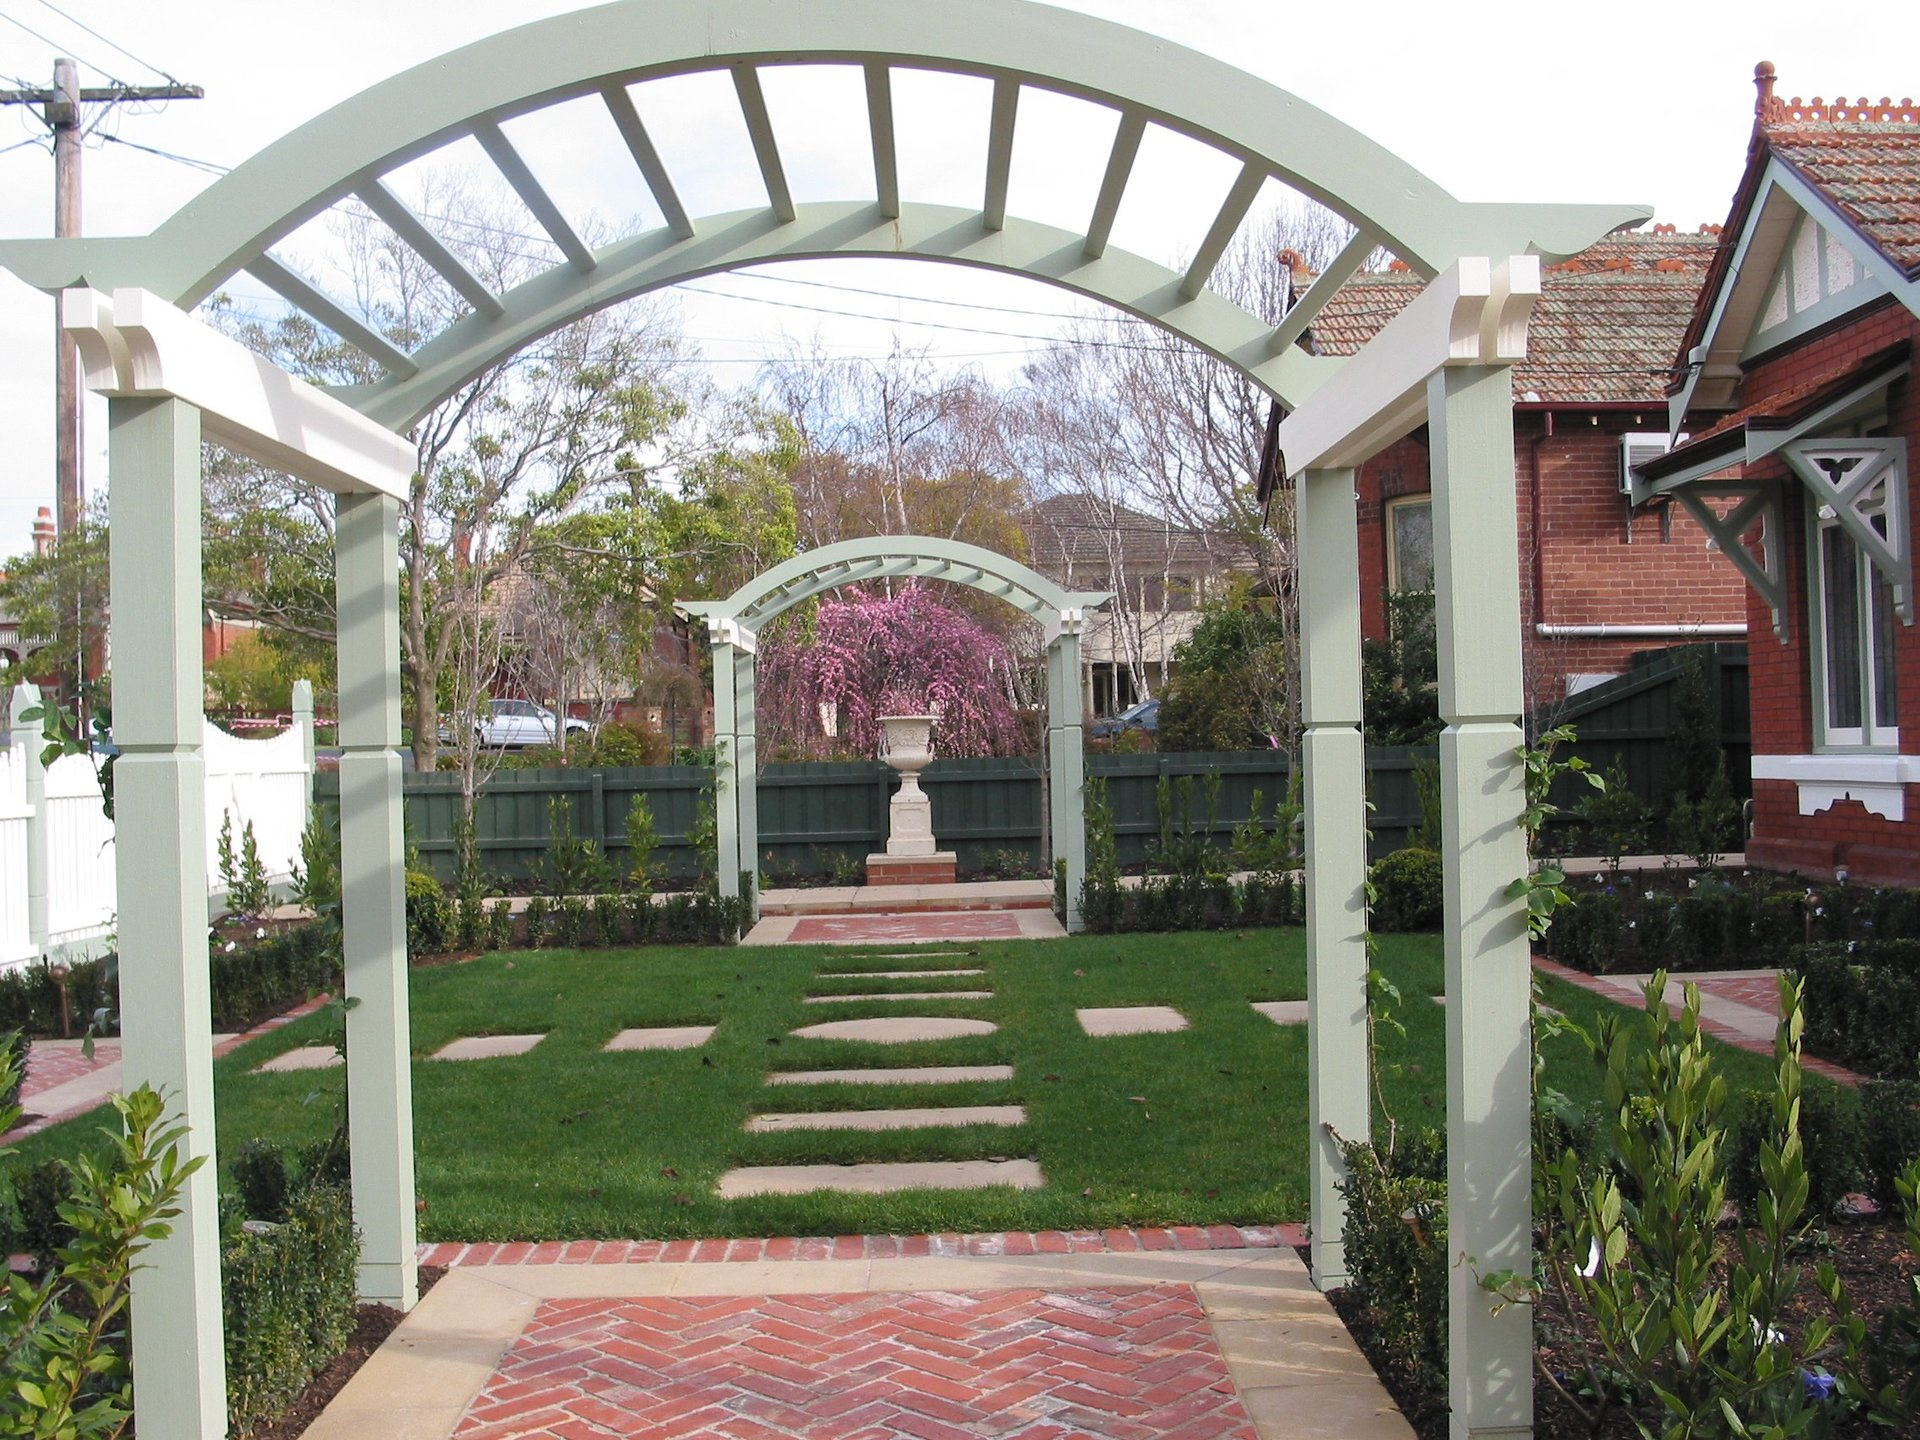 Feature archways in backyard by Perry Bird Pickets